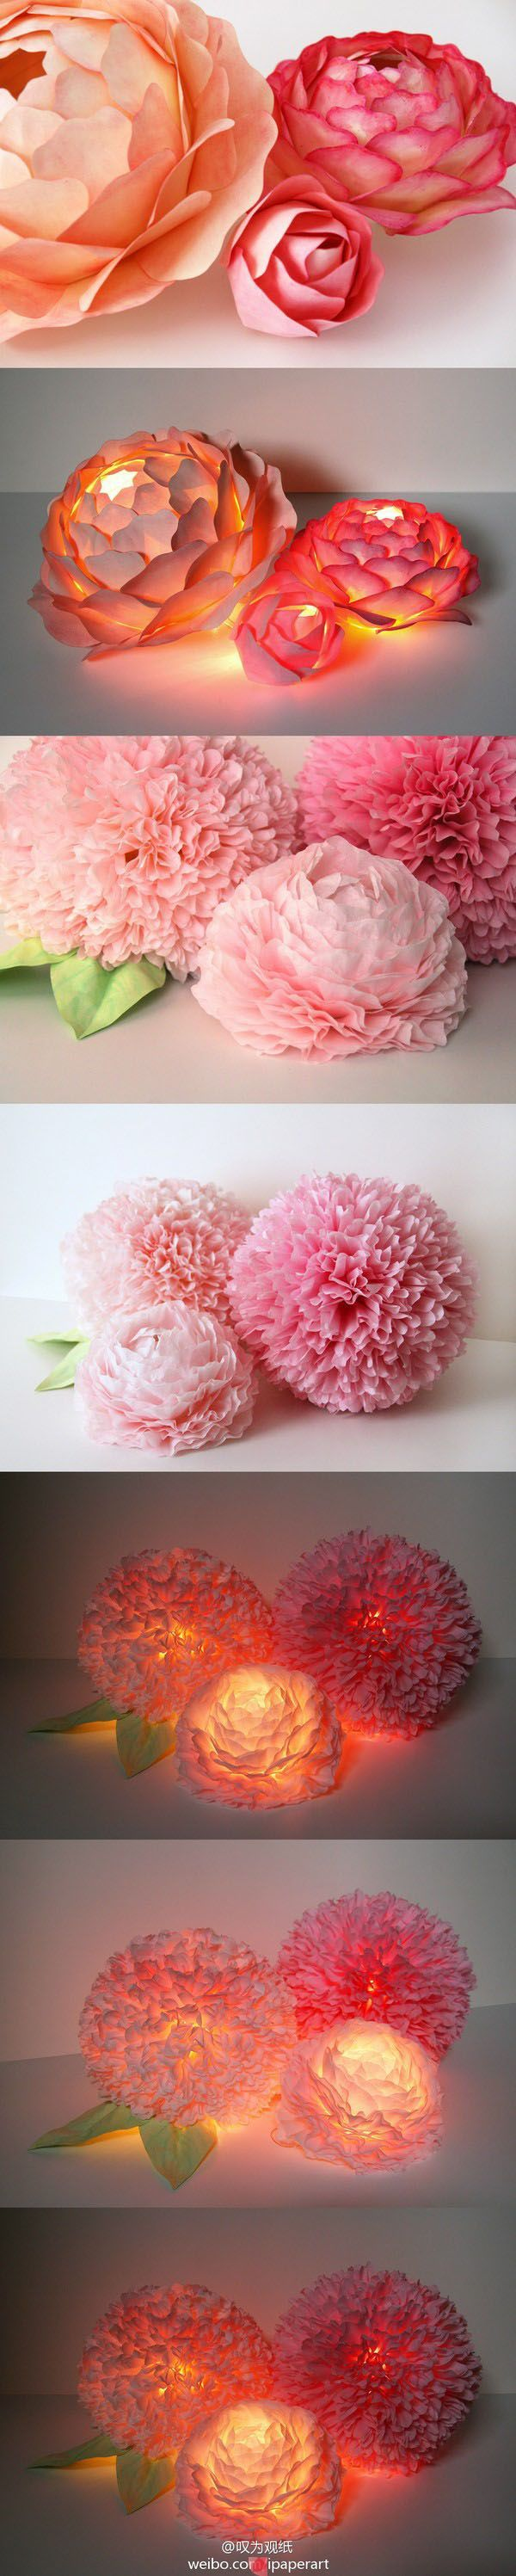 DIY Handmade Paper Flower Art. Best 25  Handmade paper flowers ideas on Pinterest   Paper flowers